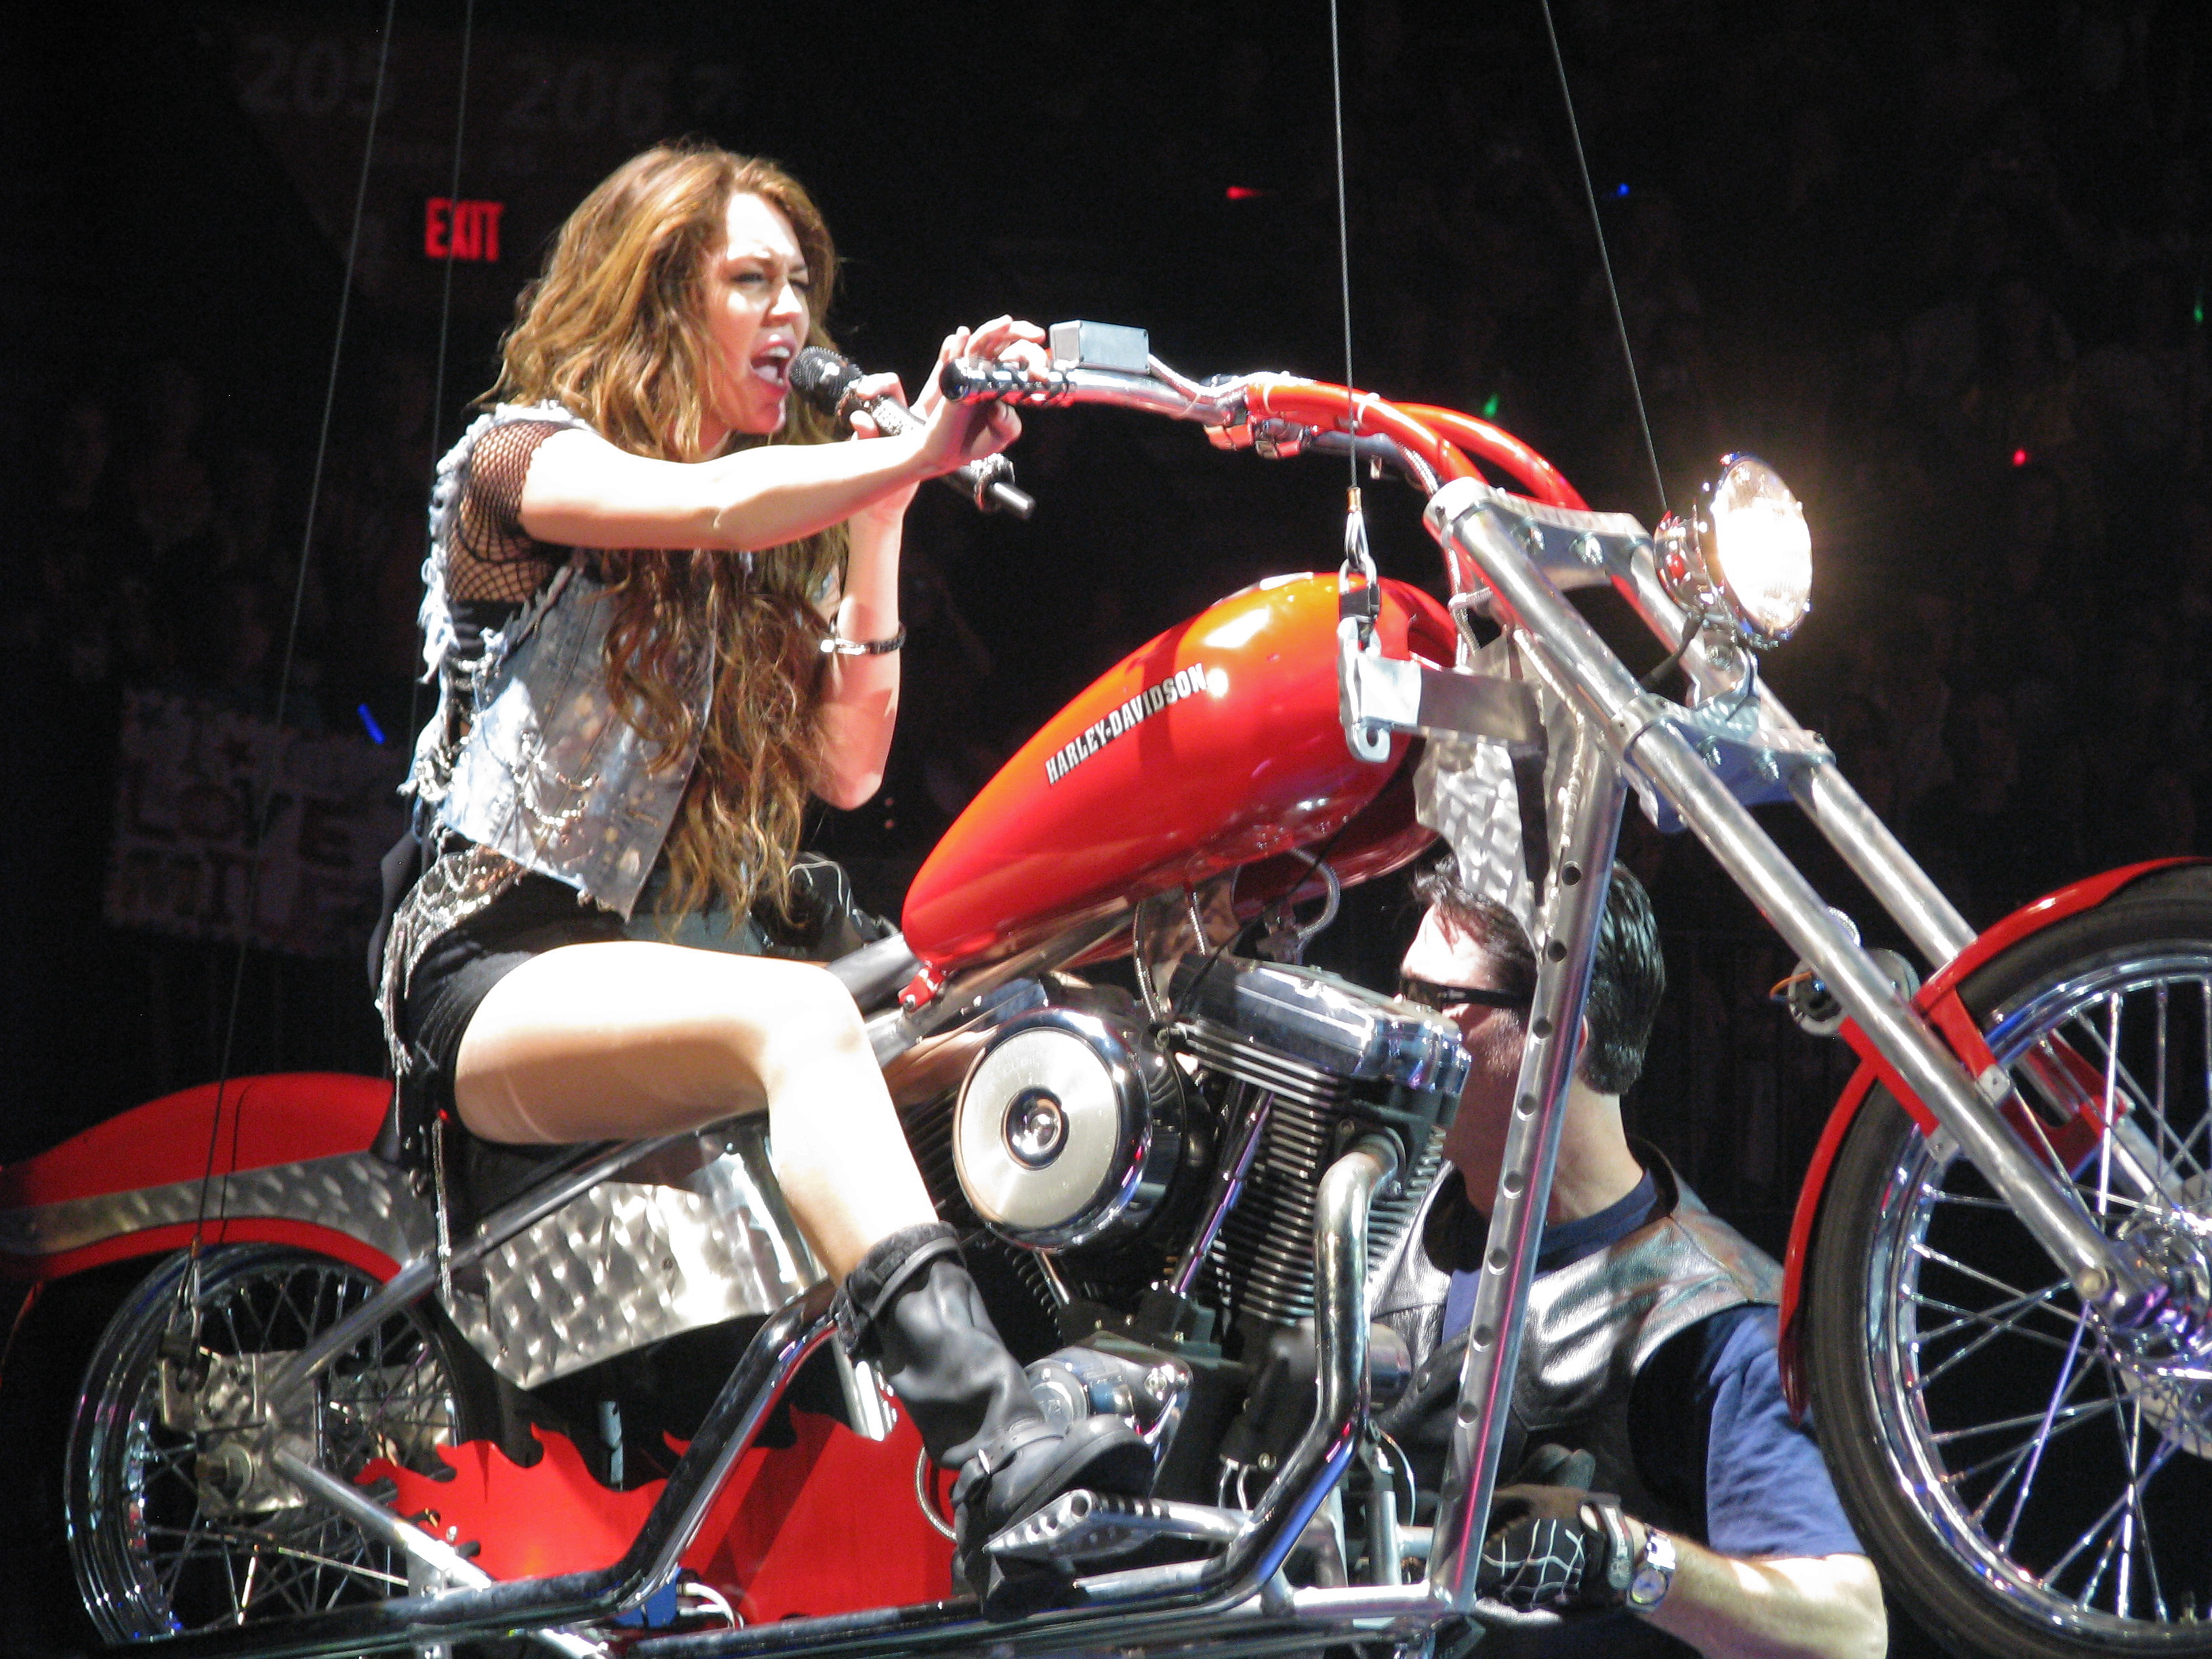 http://upload.wikimedia.org/wikipedia/commons/d/d9/Miley_Cyrus_-_Wonder_World_Tour_-_I_Love_Rock_n_Roll_3.jpg